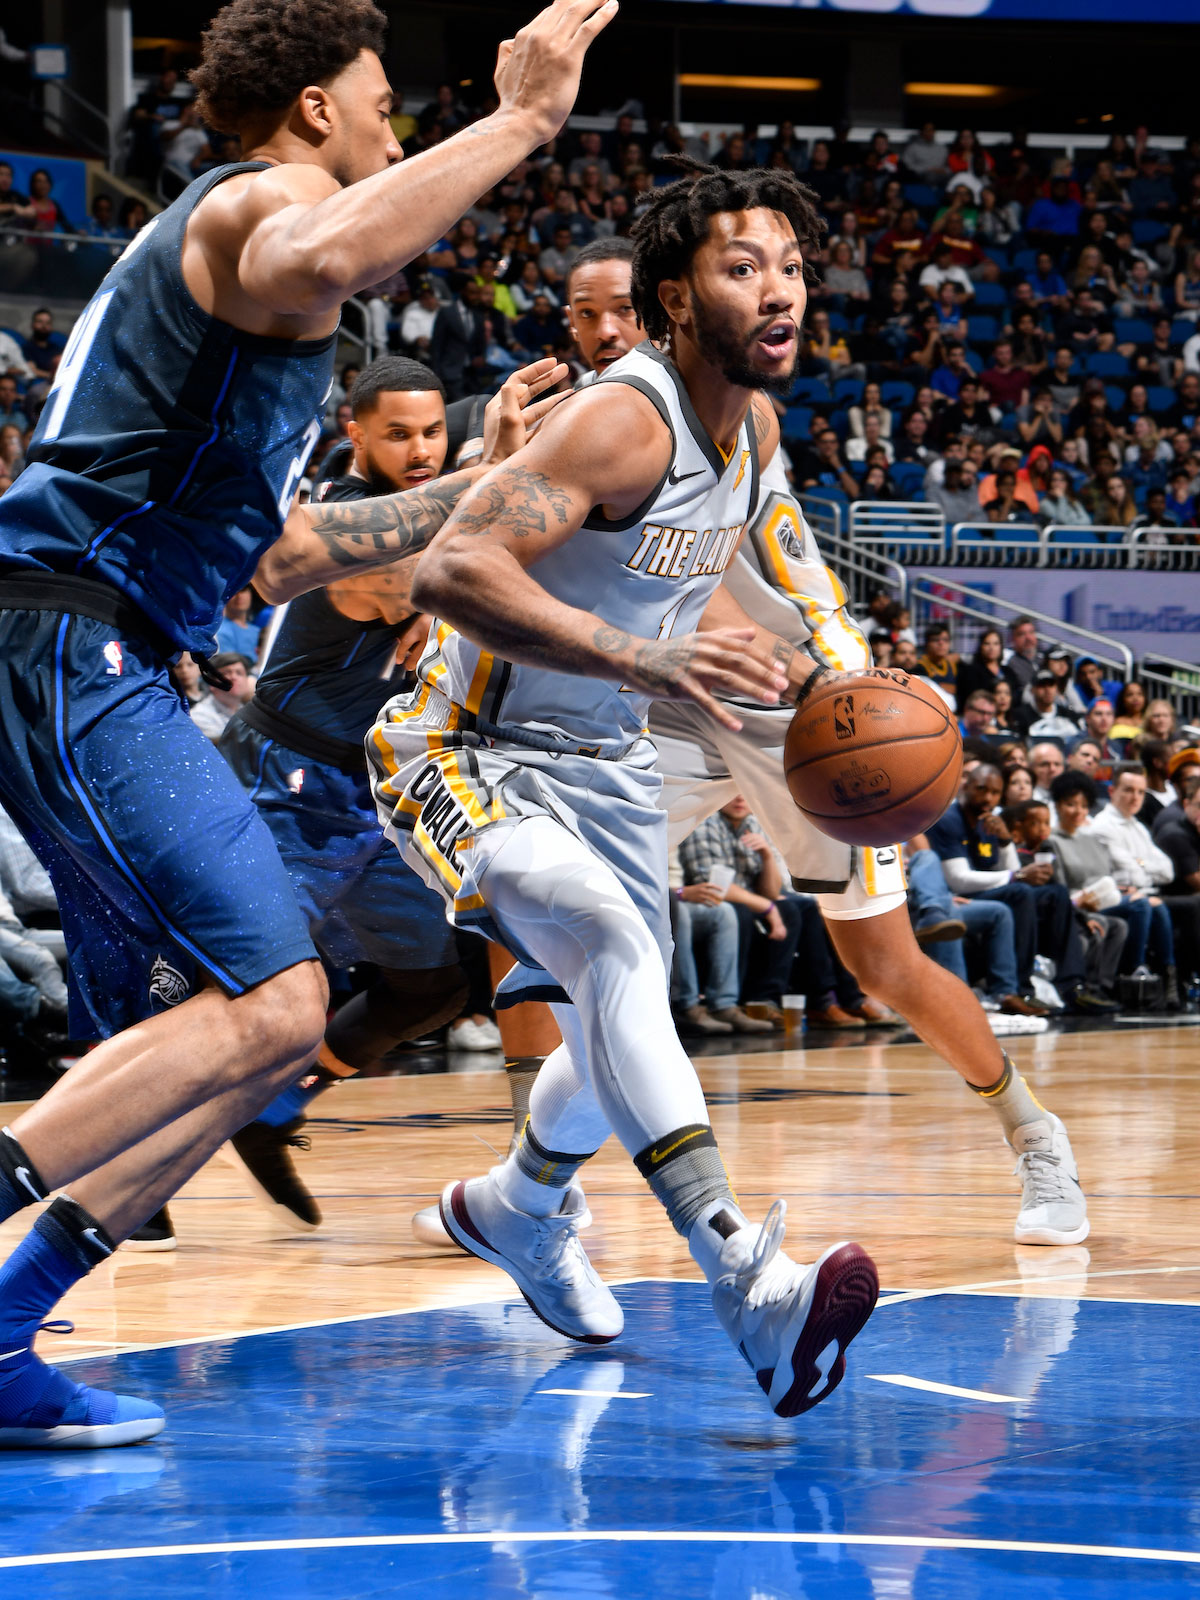 Derrick Rose #1 of the Cleveland Cavaliers handles the ball against the Orlando Magic on February 6, 2018 at Amway Center in Orlando, Florida.